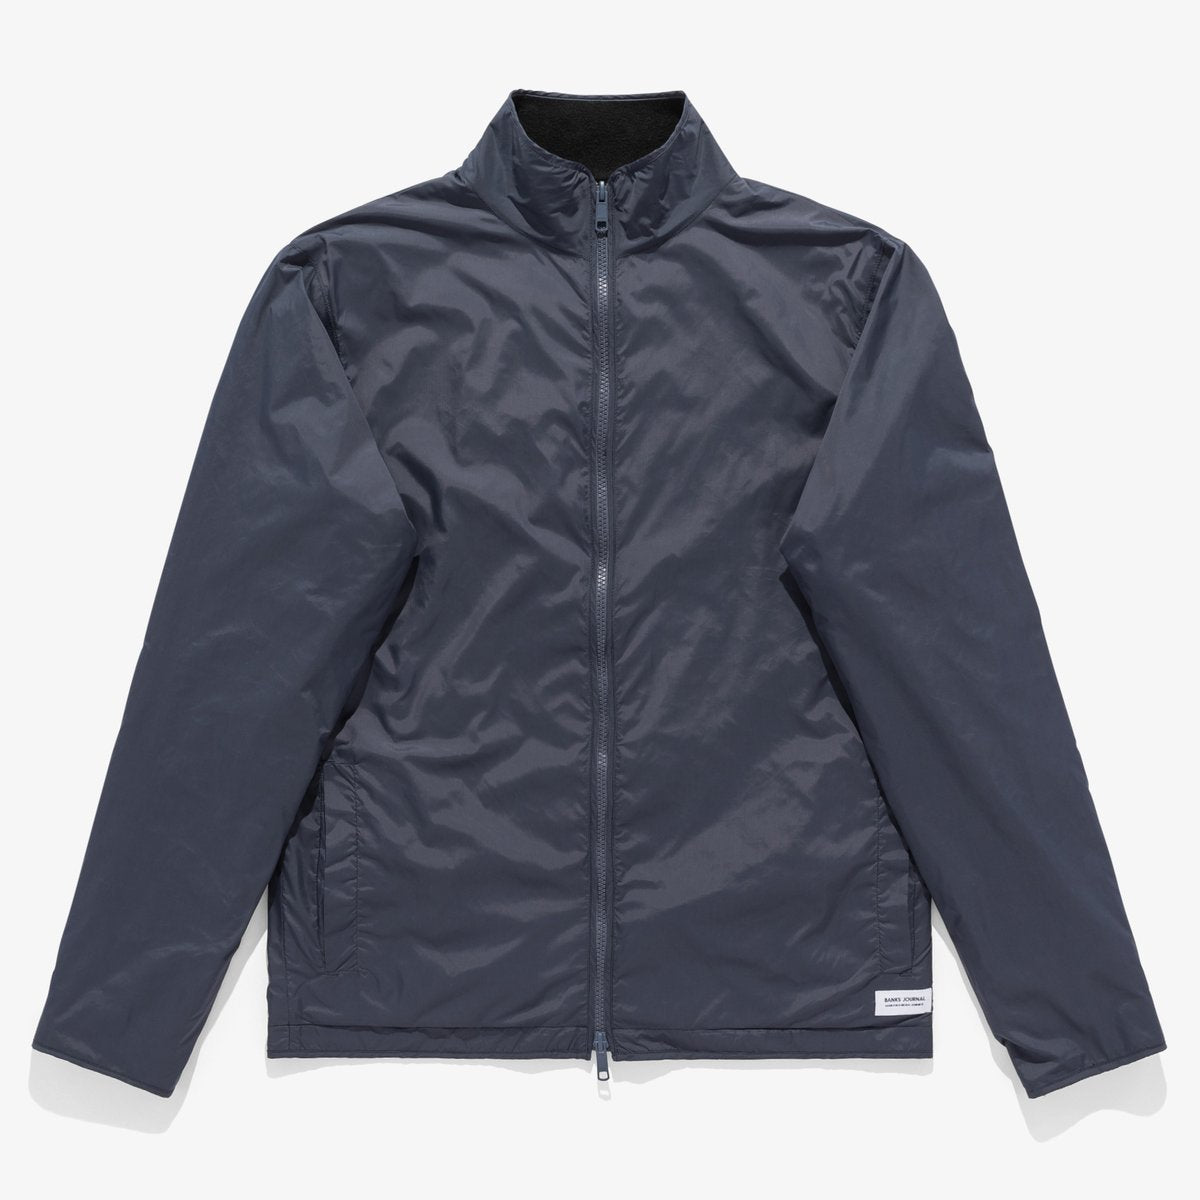 Banks Journal REVERSAL - JACKET / Neighborhood Goods